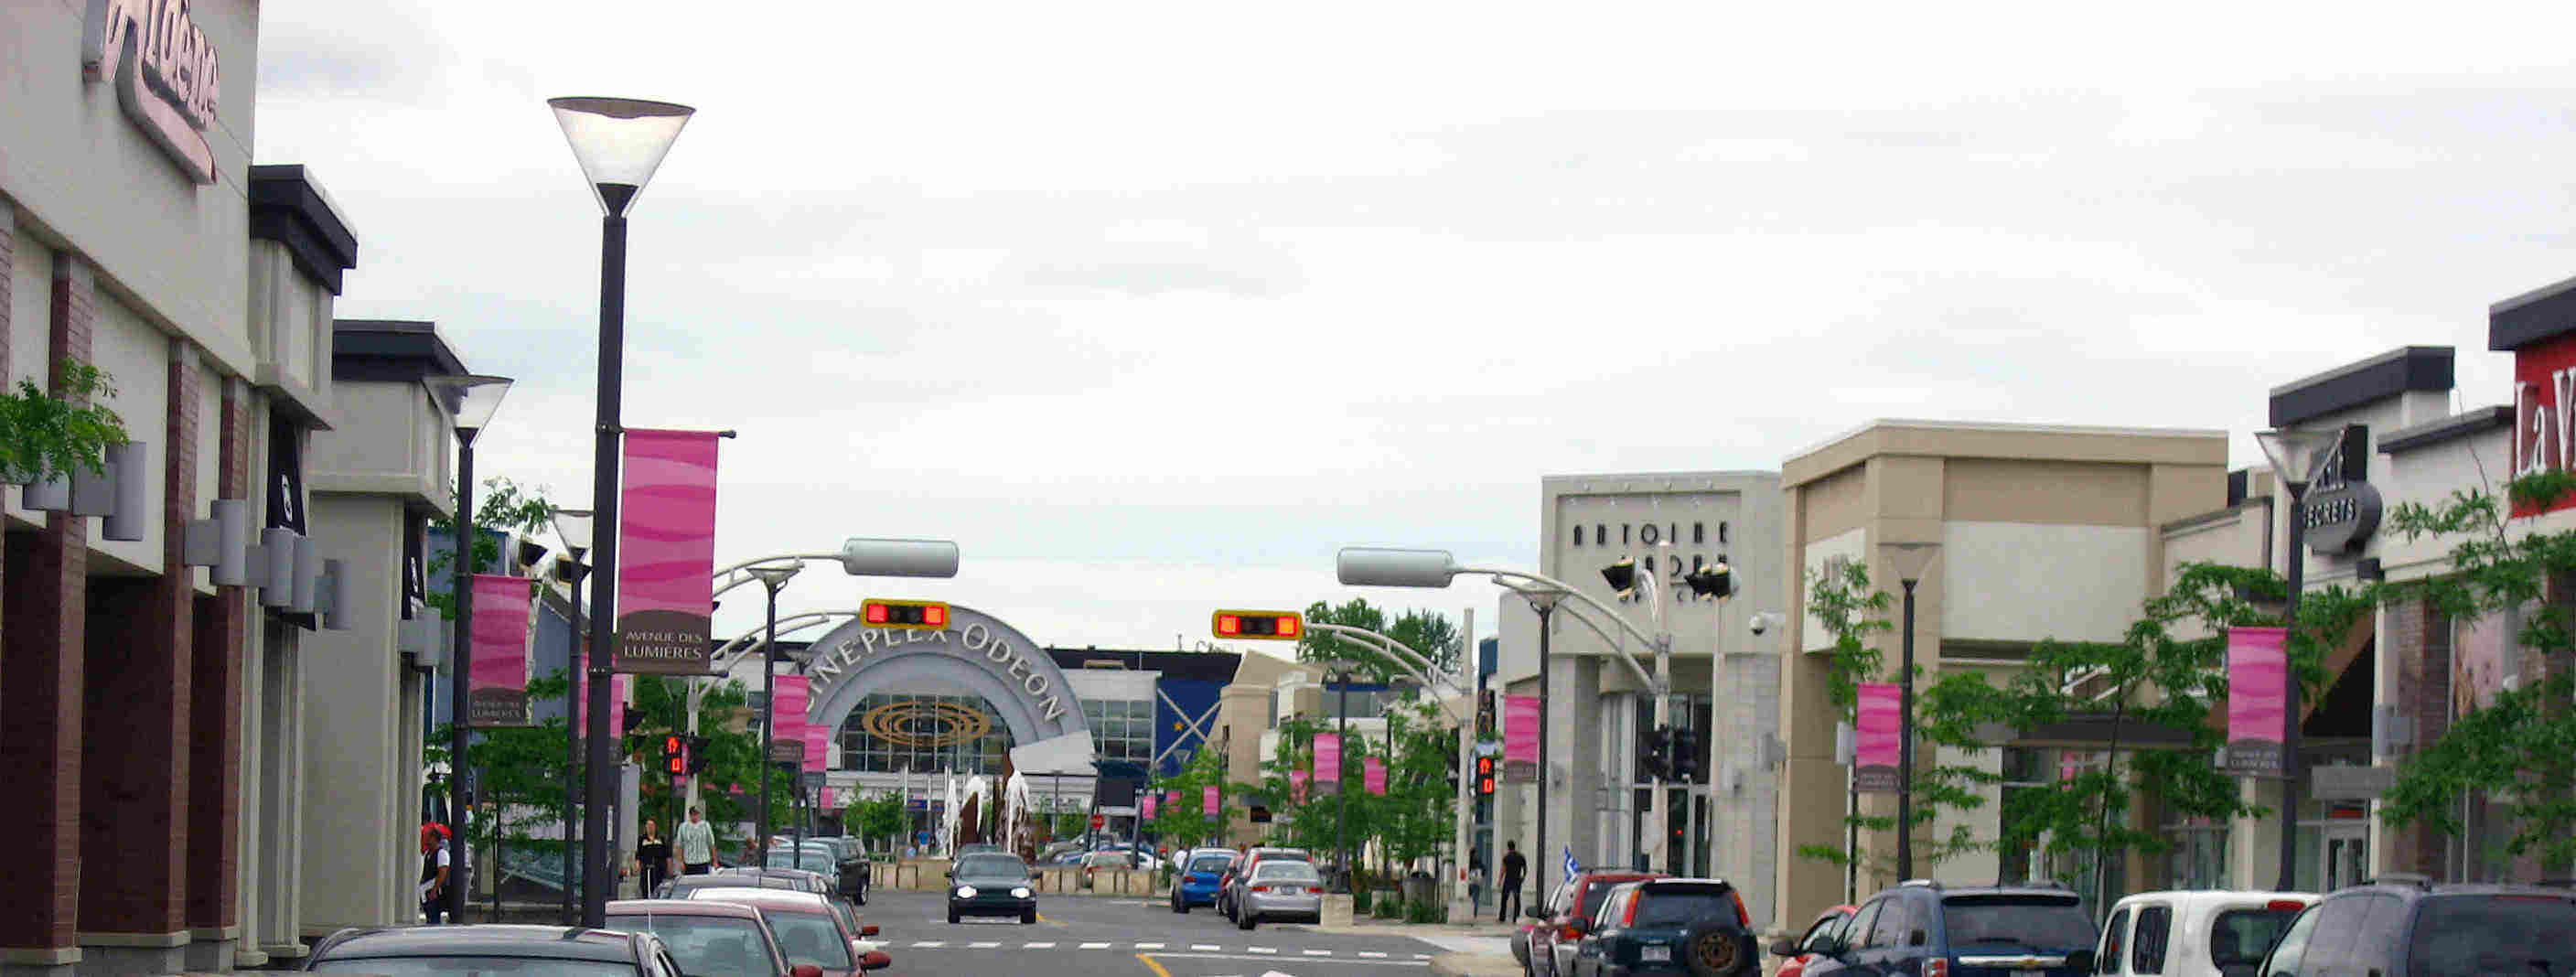 Commercial business district in Brossard